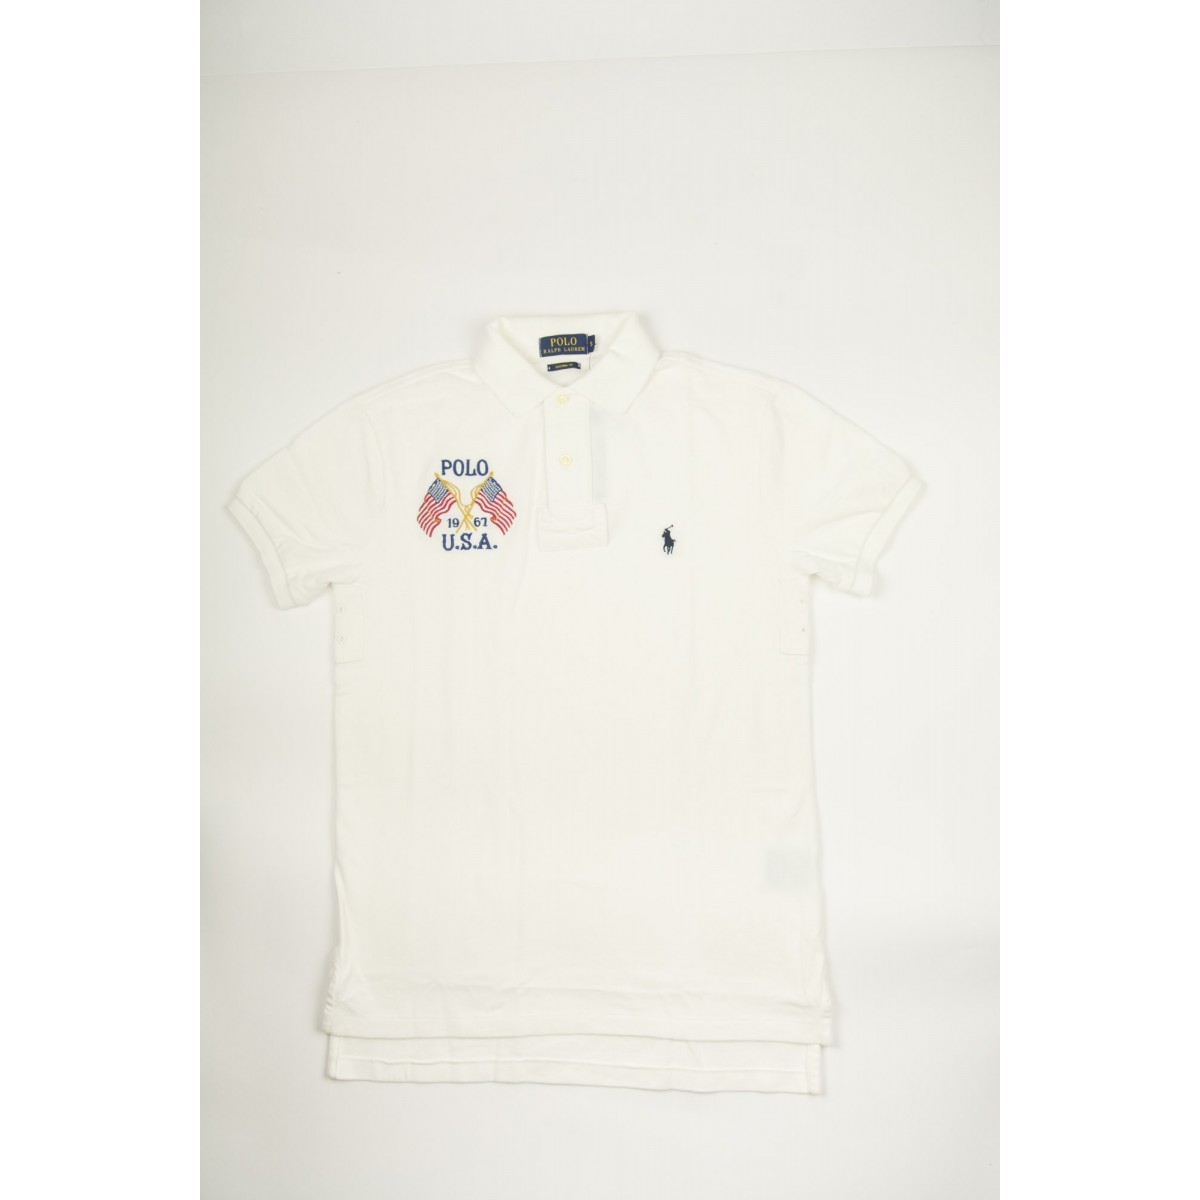 Polo Short Sleeve Polo Ralph Lauren - A12Kj602C8312 A1240 - crema